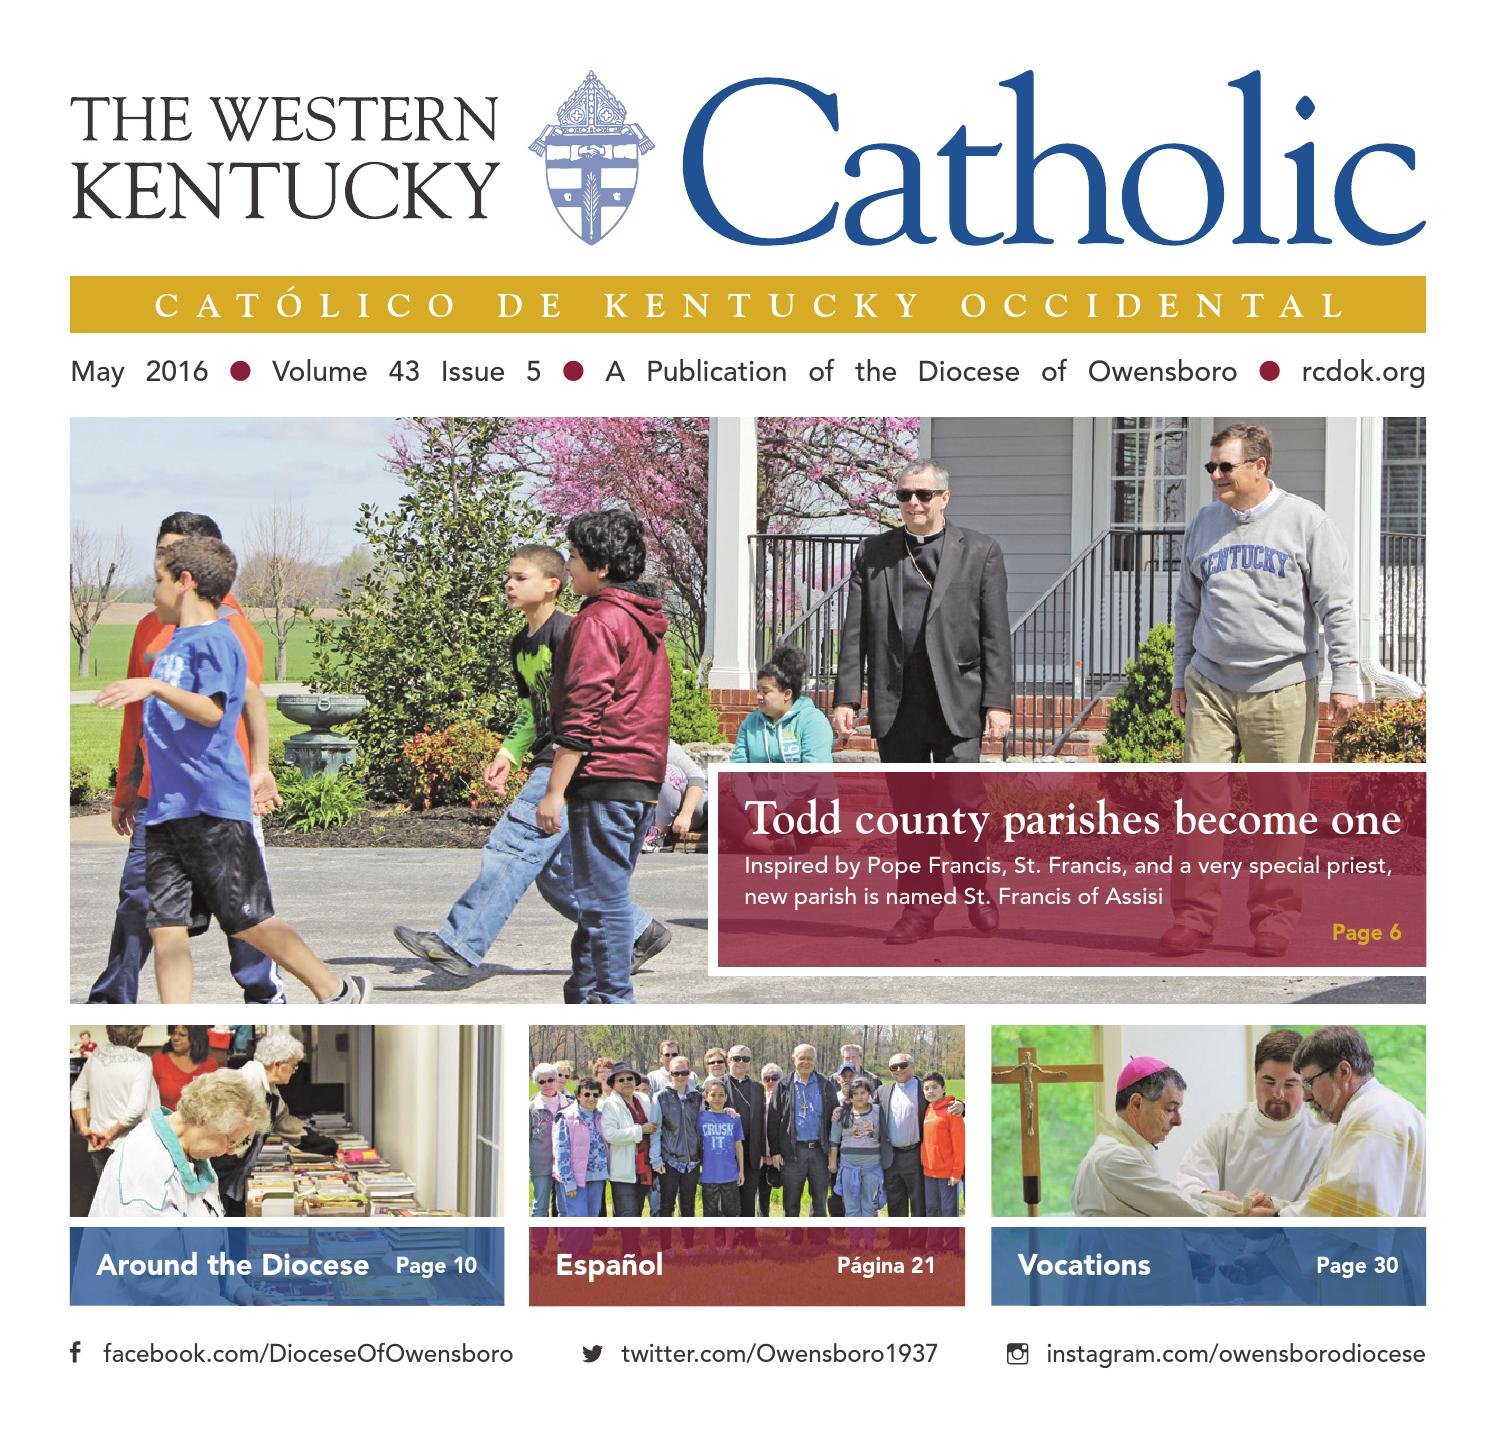 Adulterio Nacional Online the western kentucky catholic may 2016diocese of